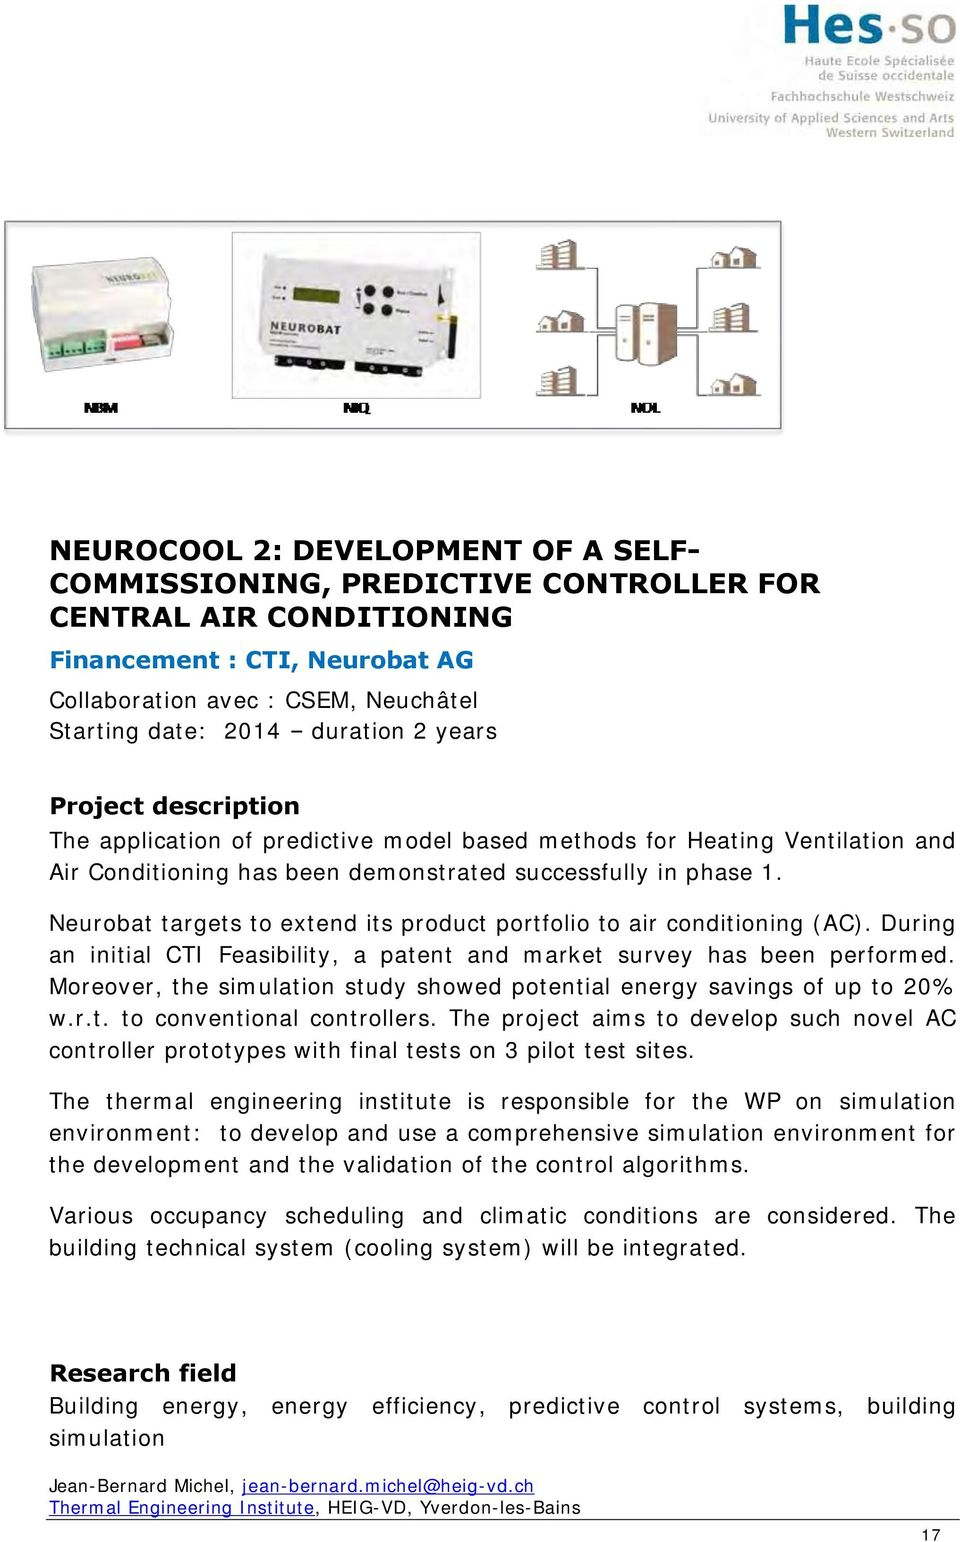 Neurobat targets to extend its product portfolio to air conditioning (AC). During an initial CTI Feasibility, a patent and market survey has been performed.